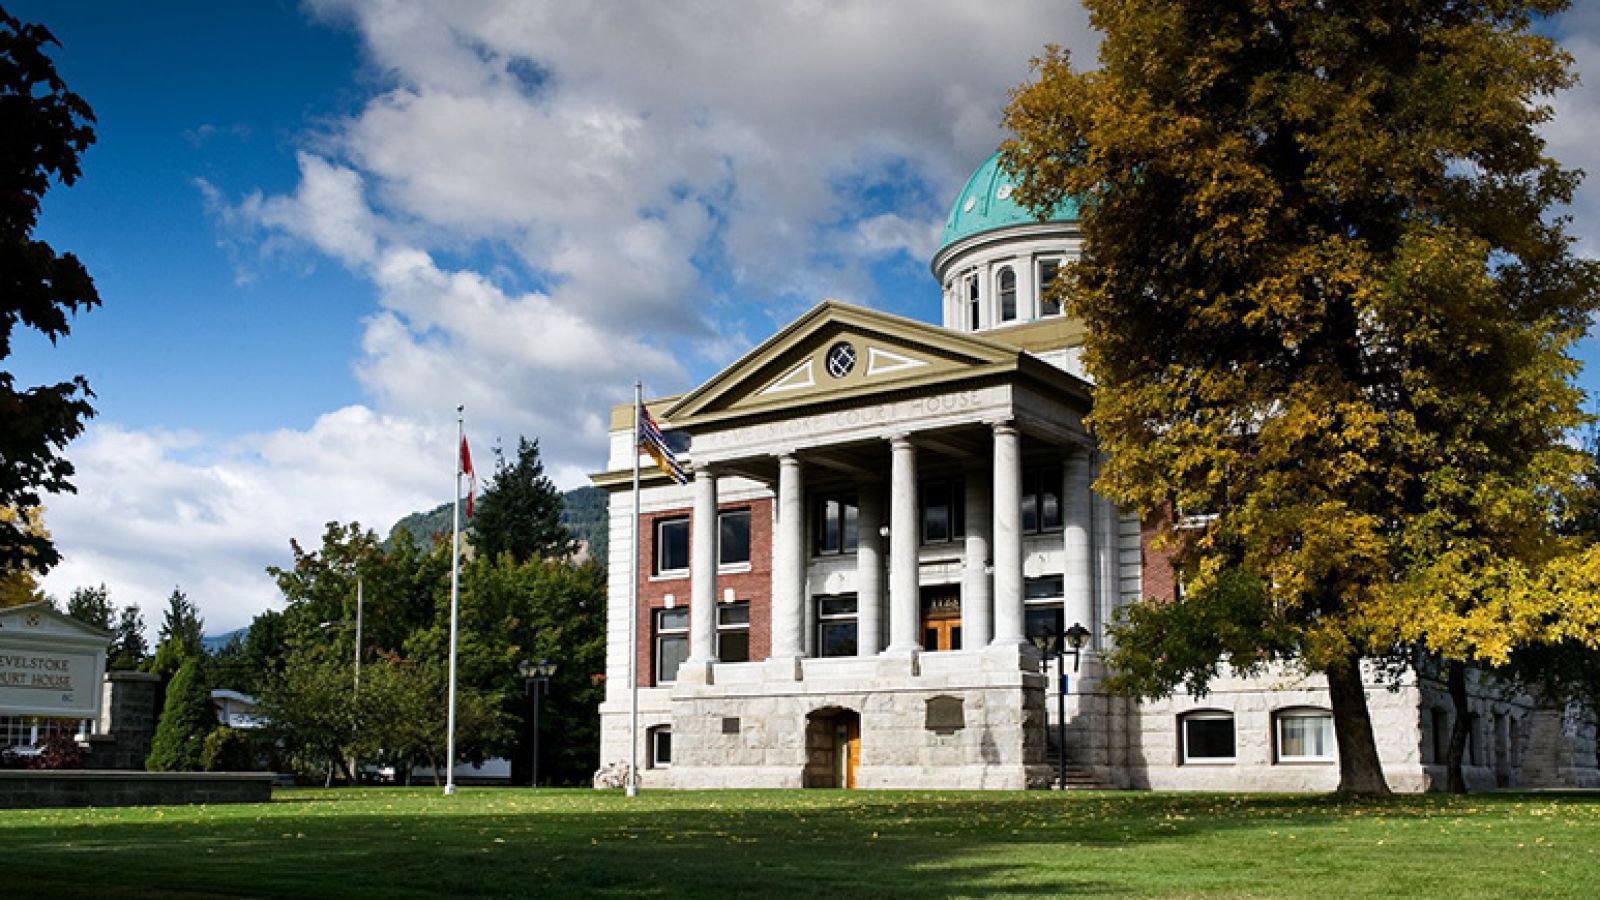 The Court House Heritage Building in Revelstoke.